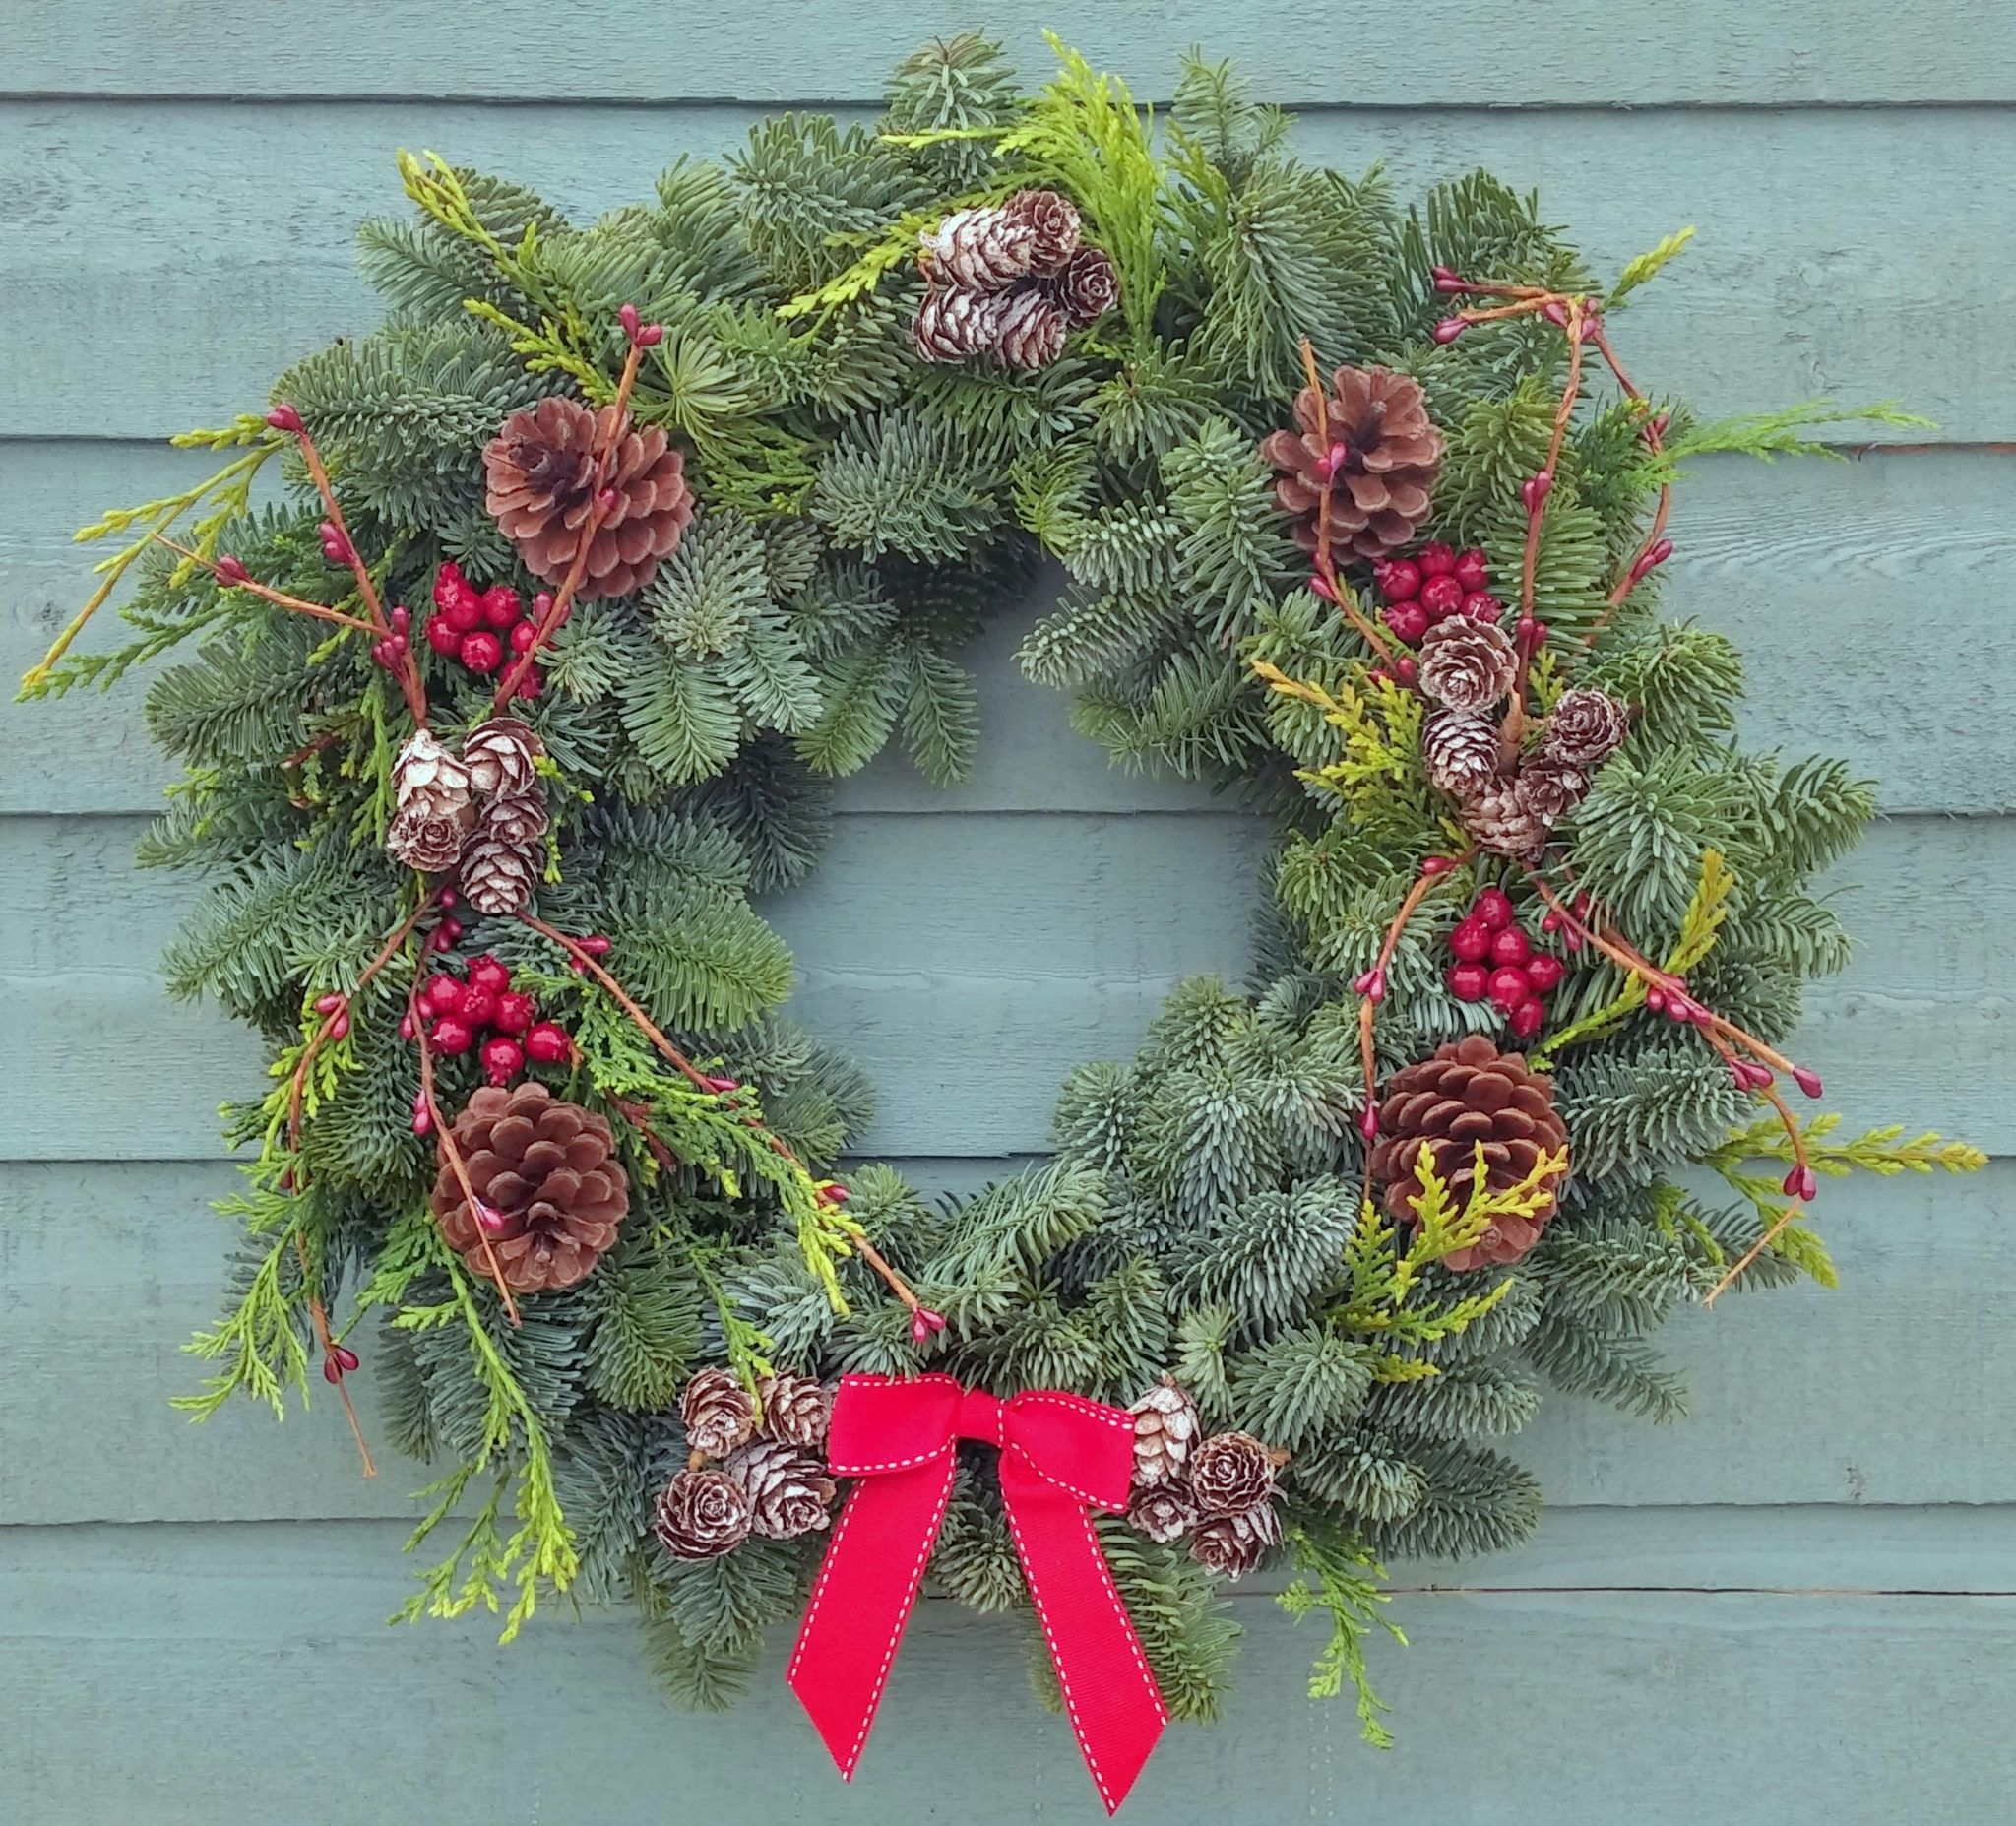 The homemade Natural Wreath is decorated with pine cones